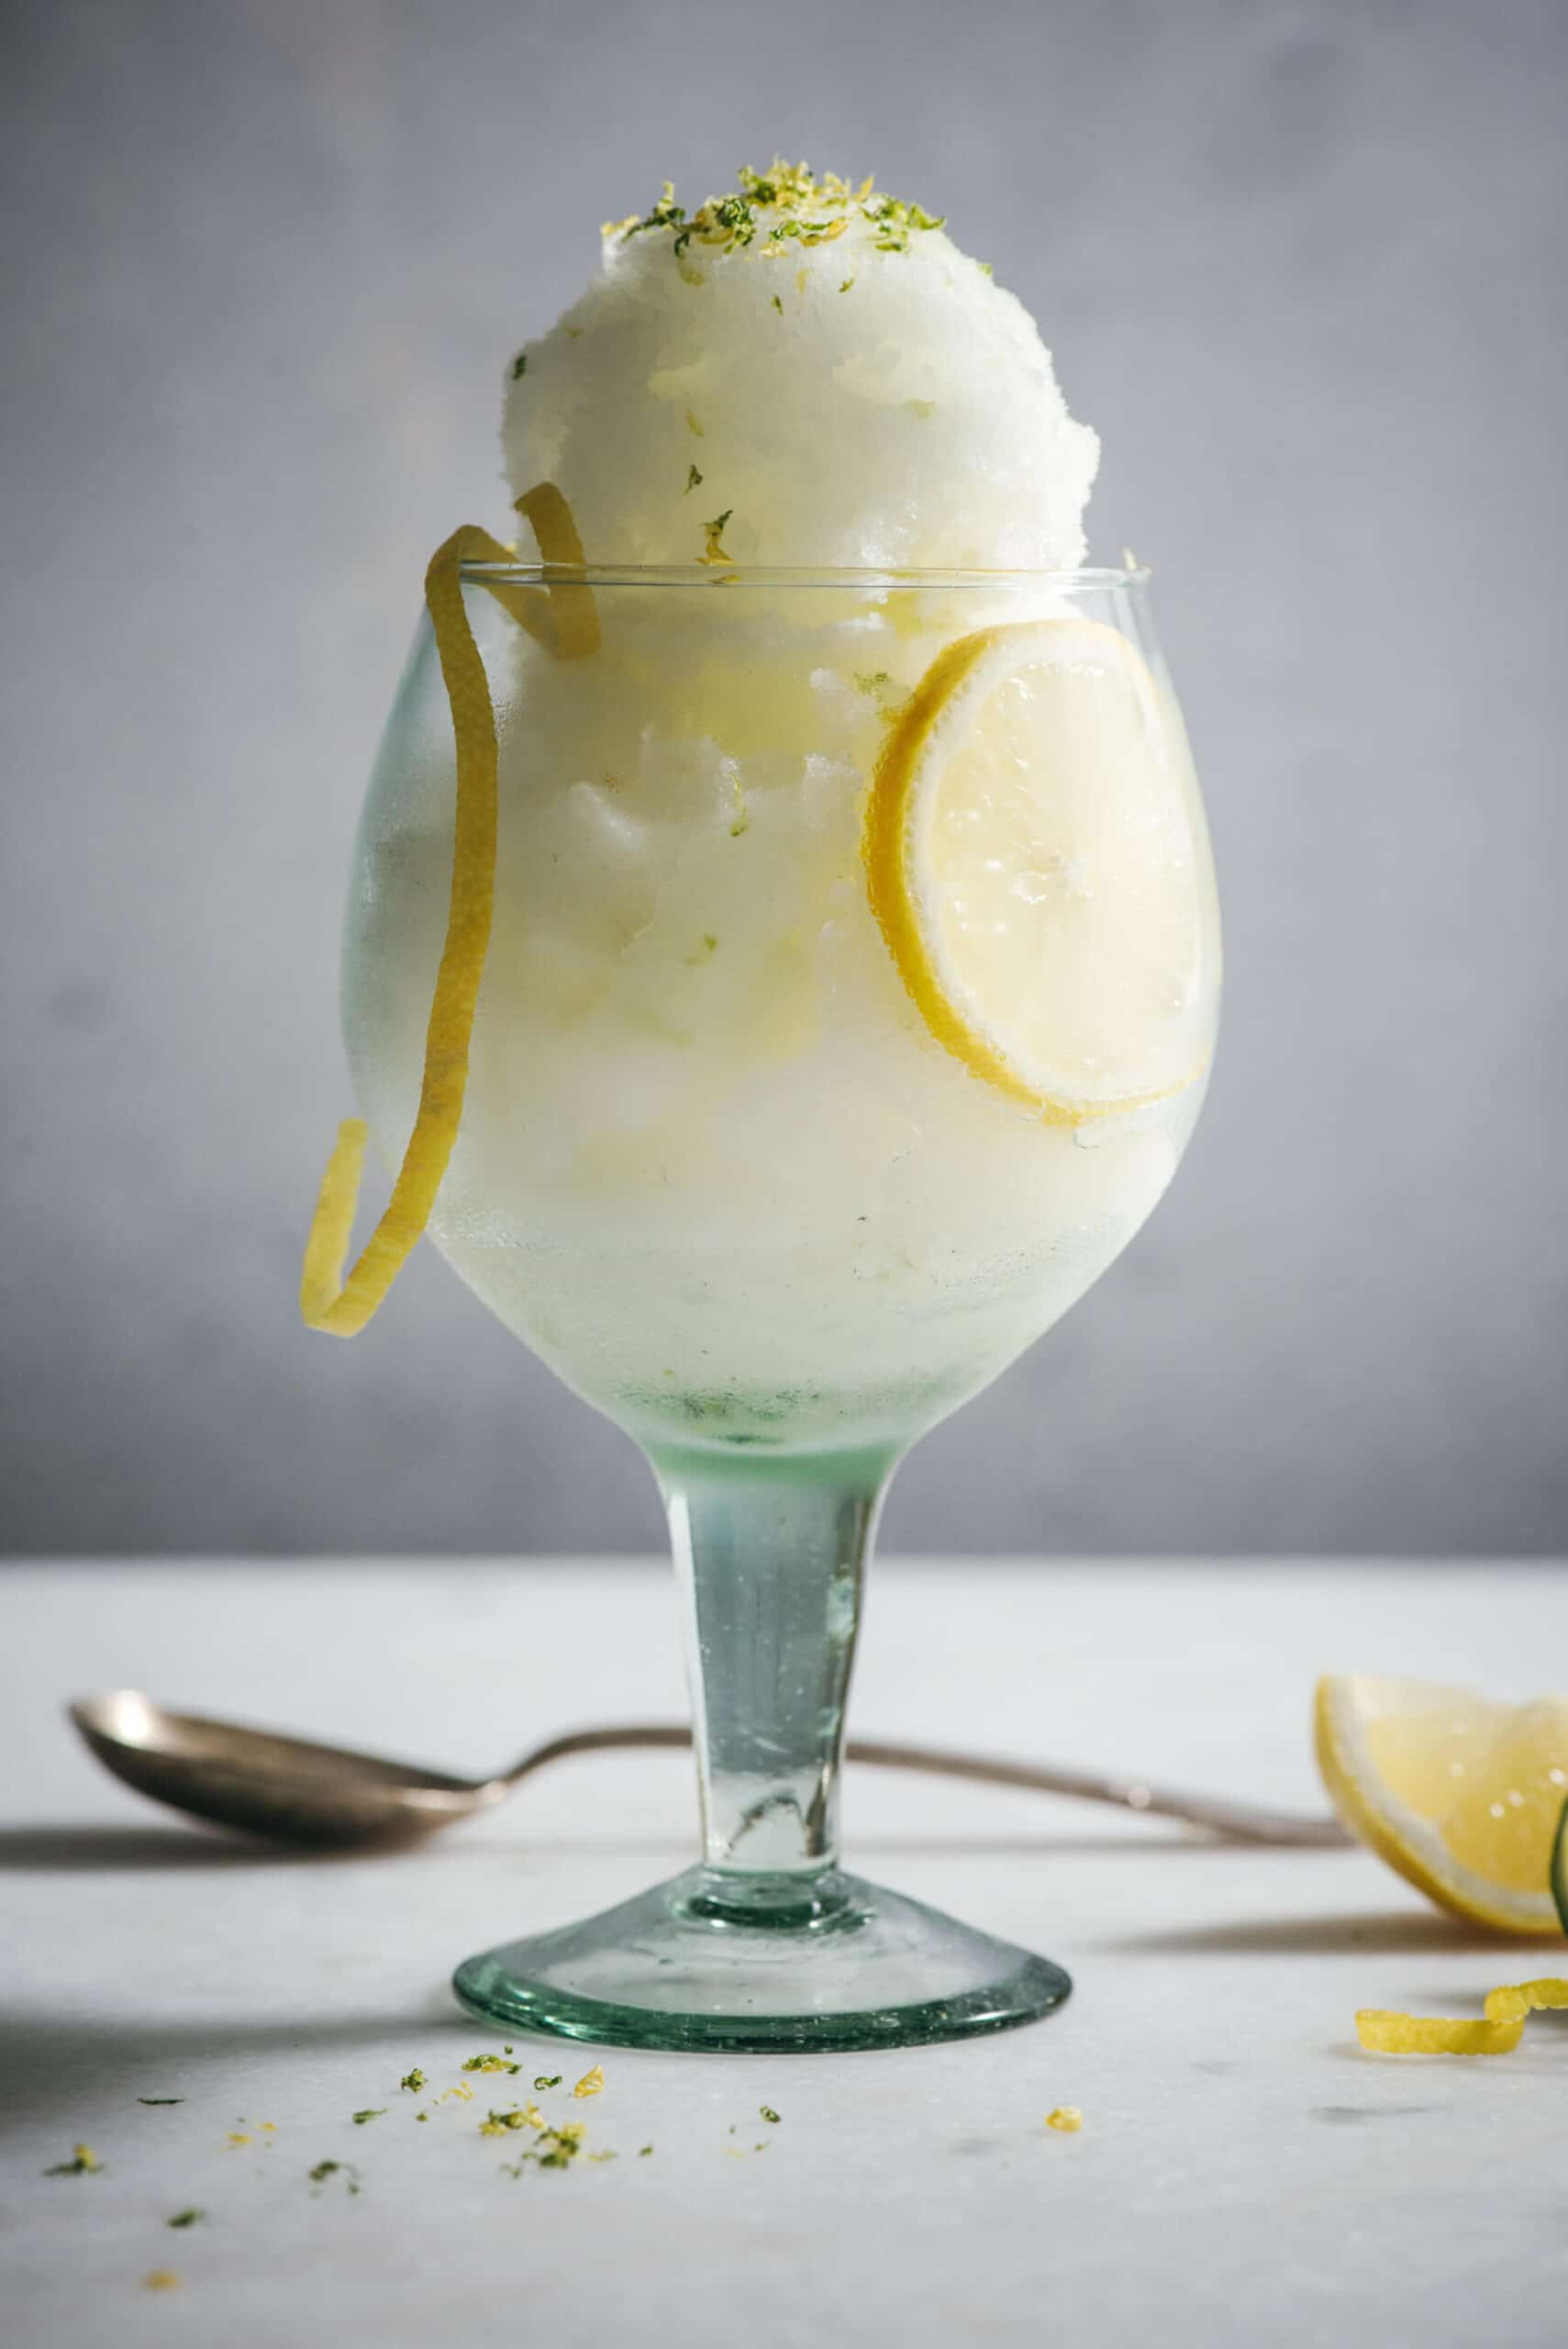 G and T sorbet in a glass